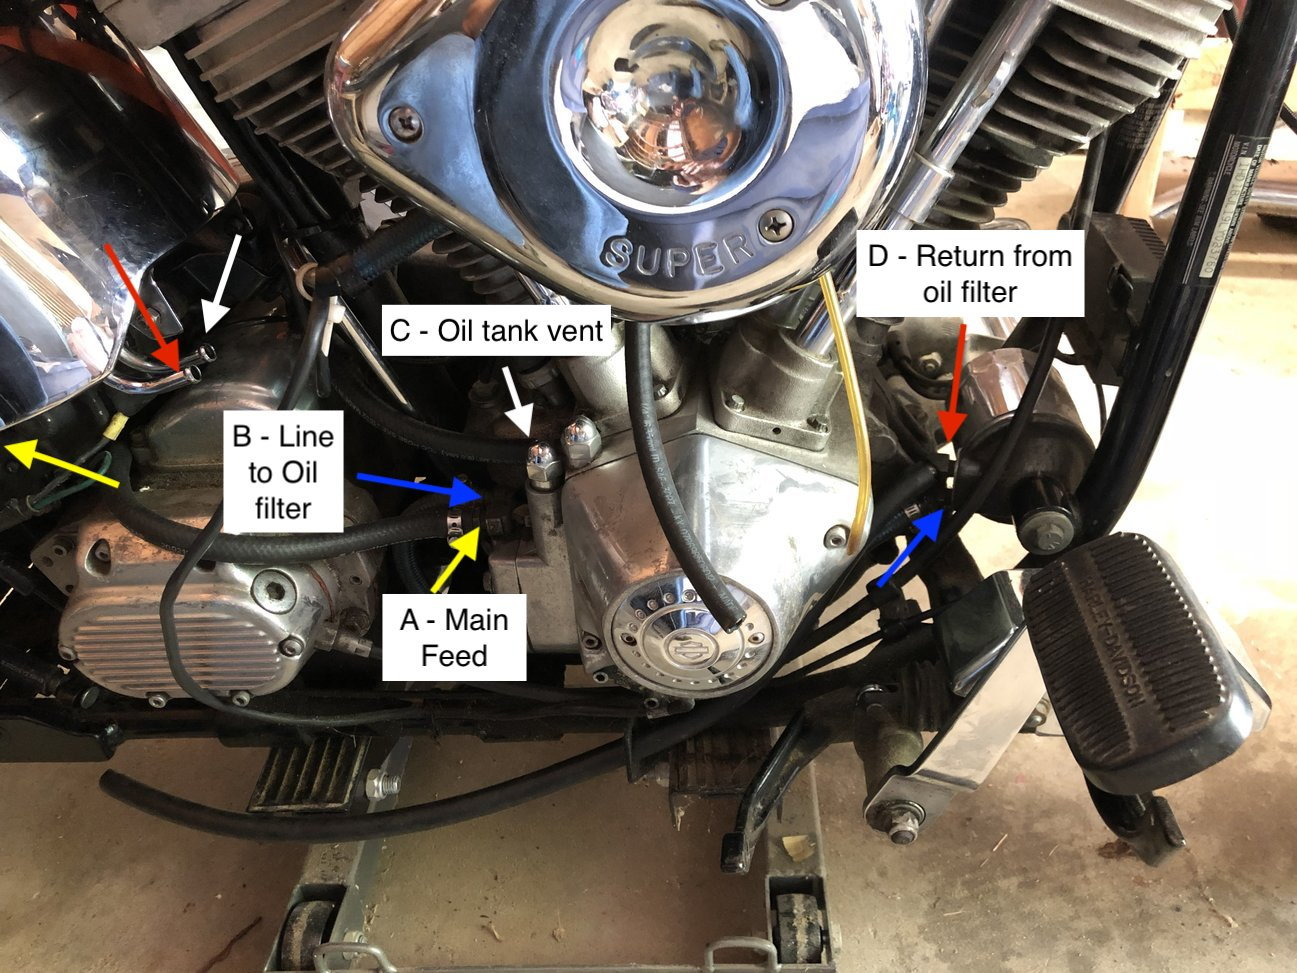 hight resolution of harley davidson oil system diagram wiring diagram datasource need help routing oil lines for evolution engine